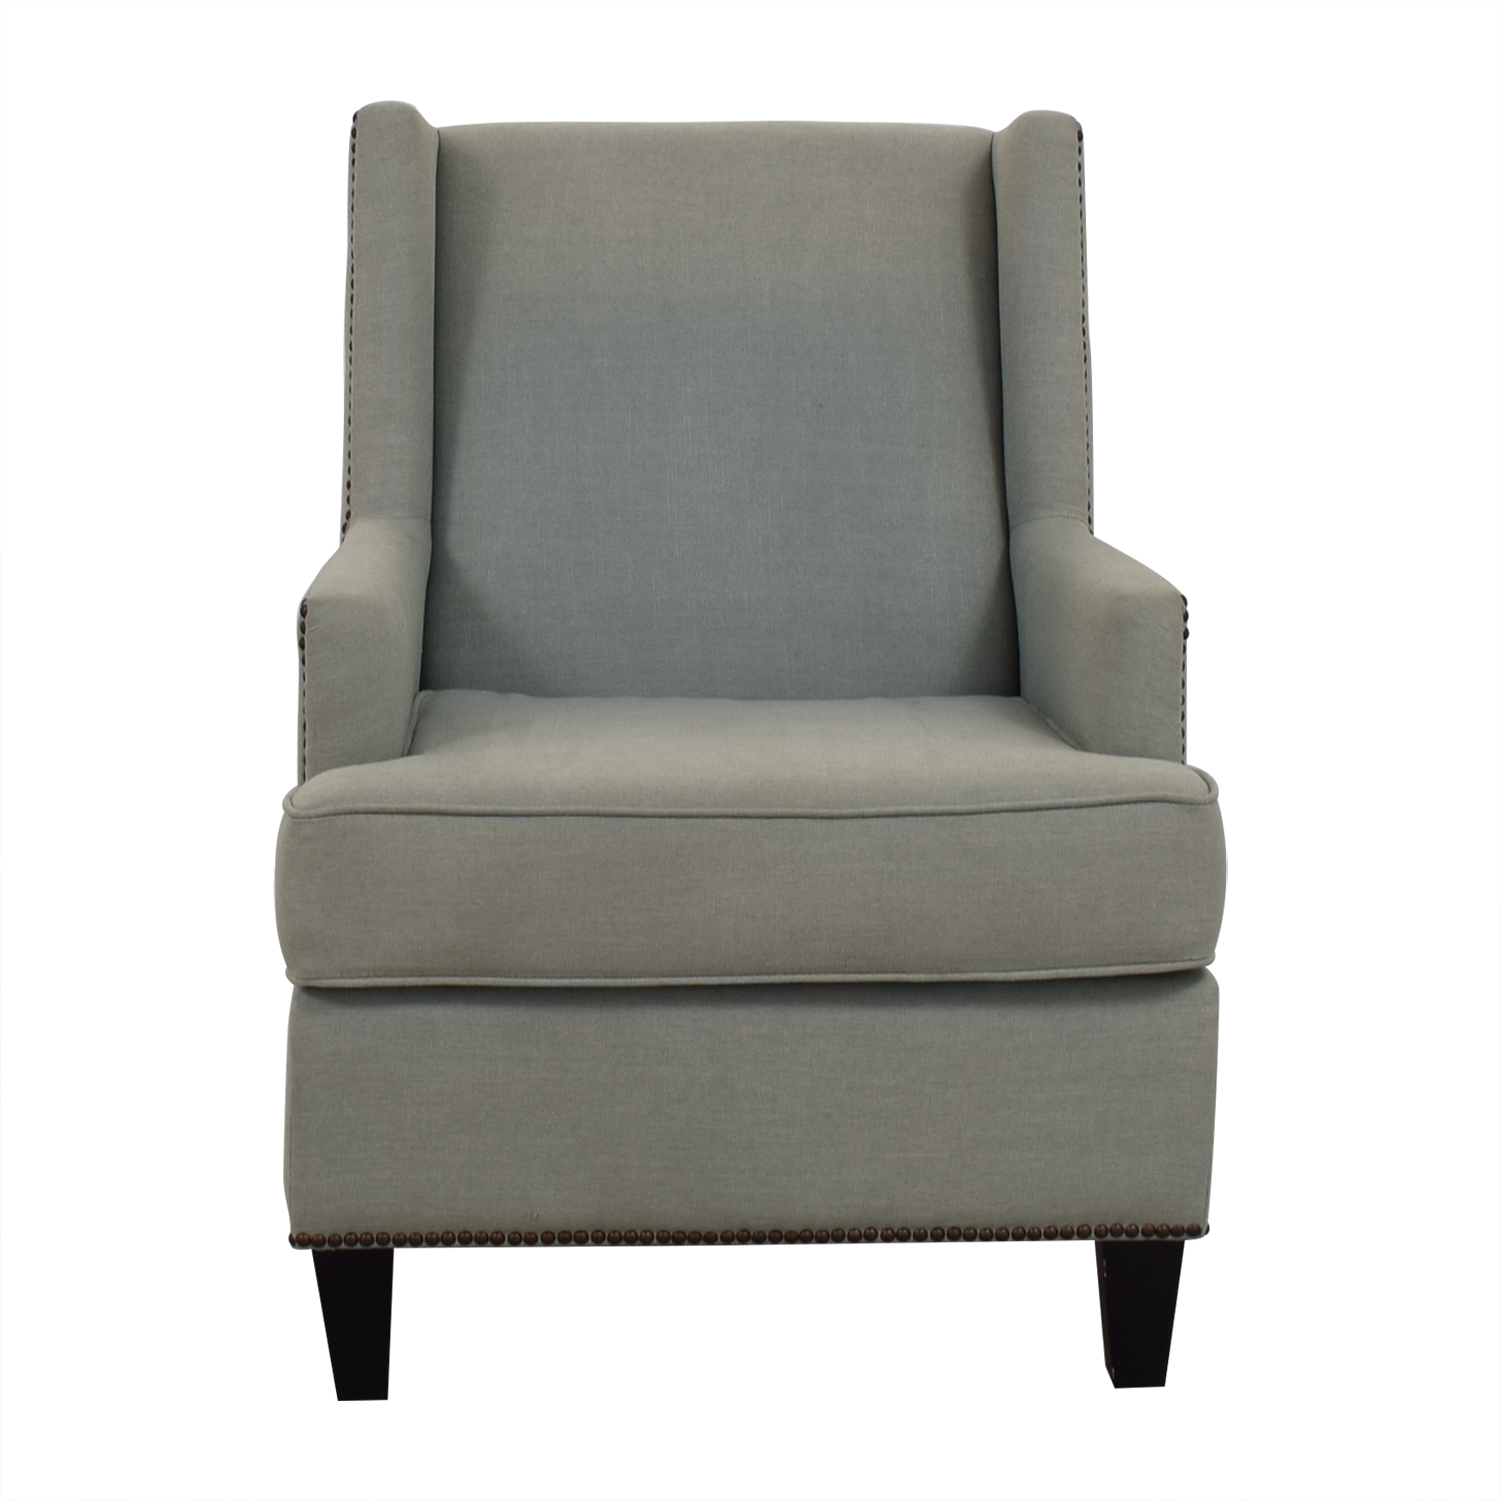 buy One Kings Lane One Kings Lane Blue Upholstered Arm Chair online